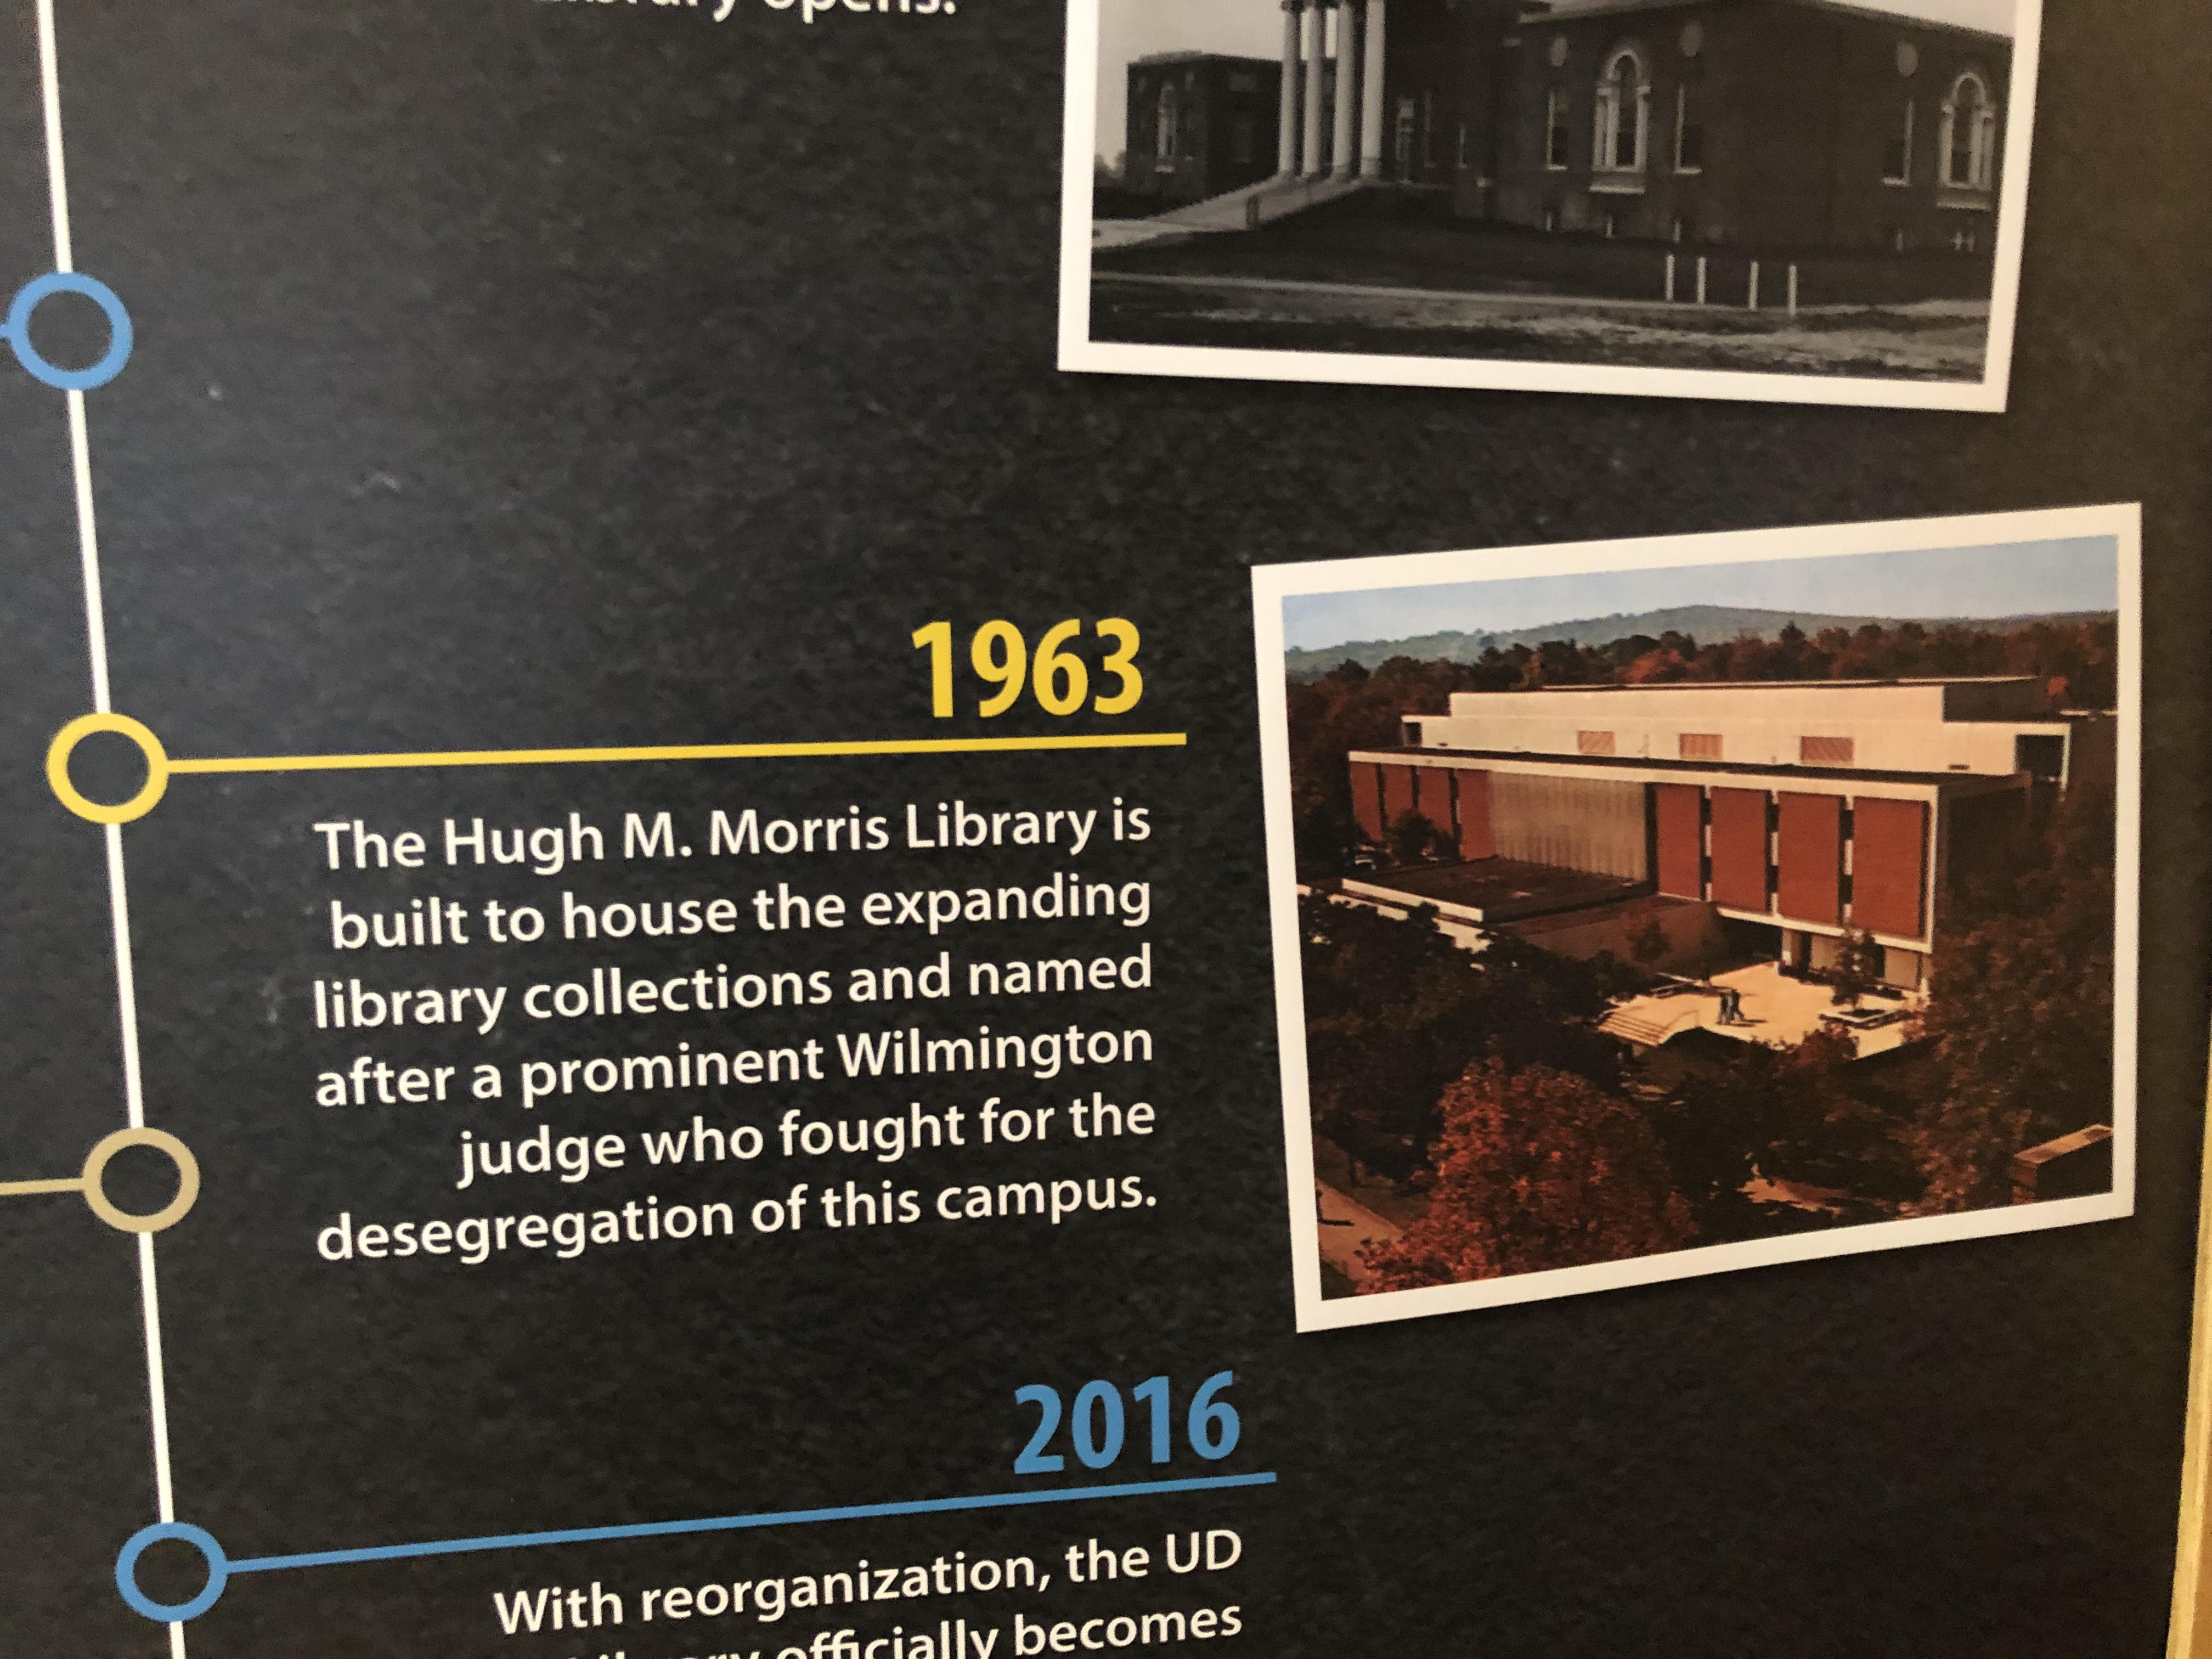 The university says that Hugh M. Morris fought for campus desegregation — History says otherwise